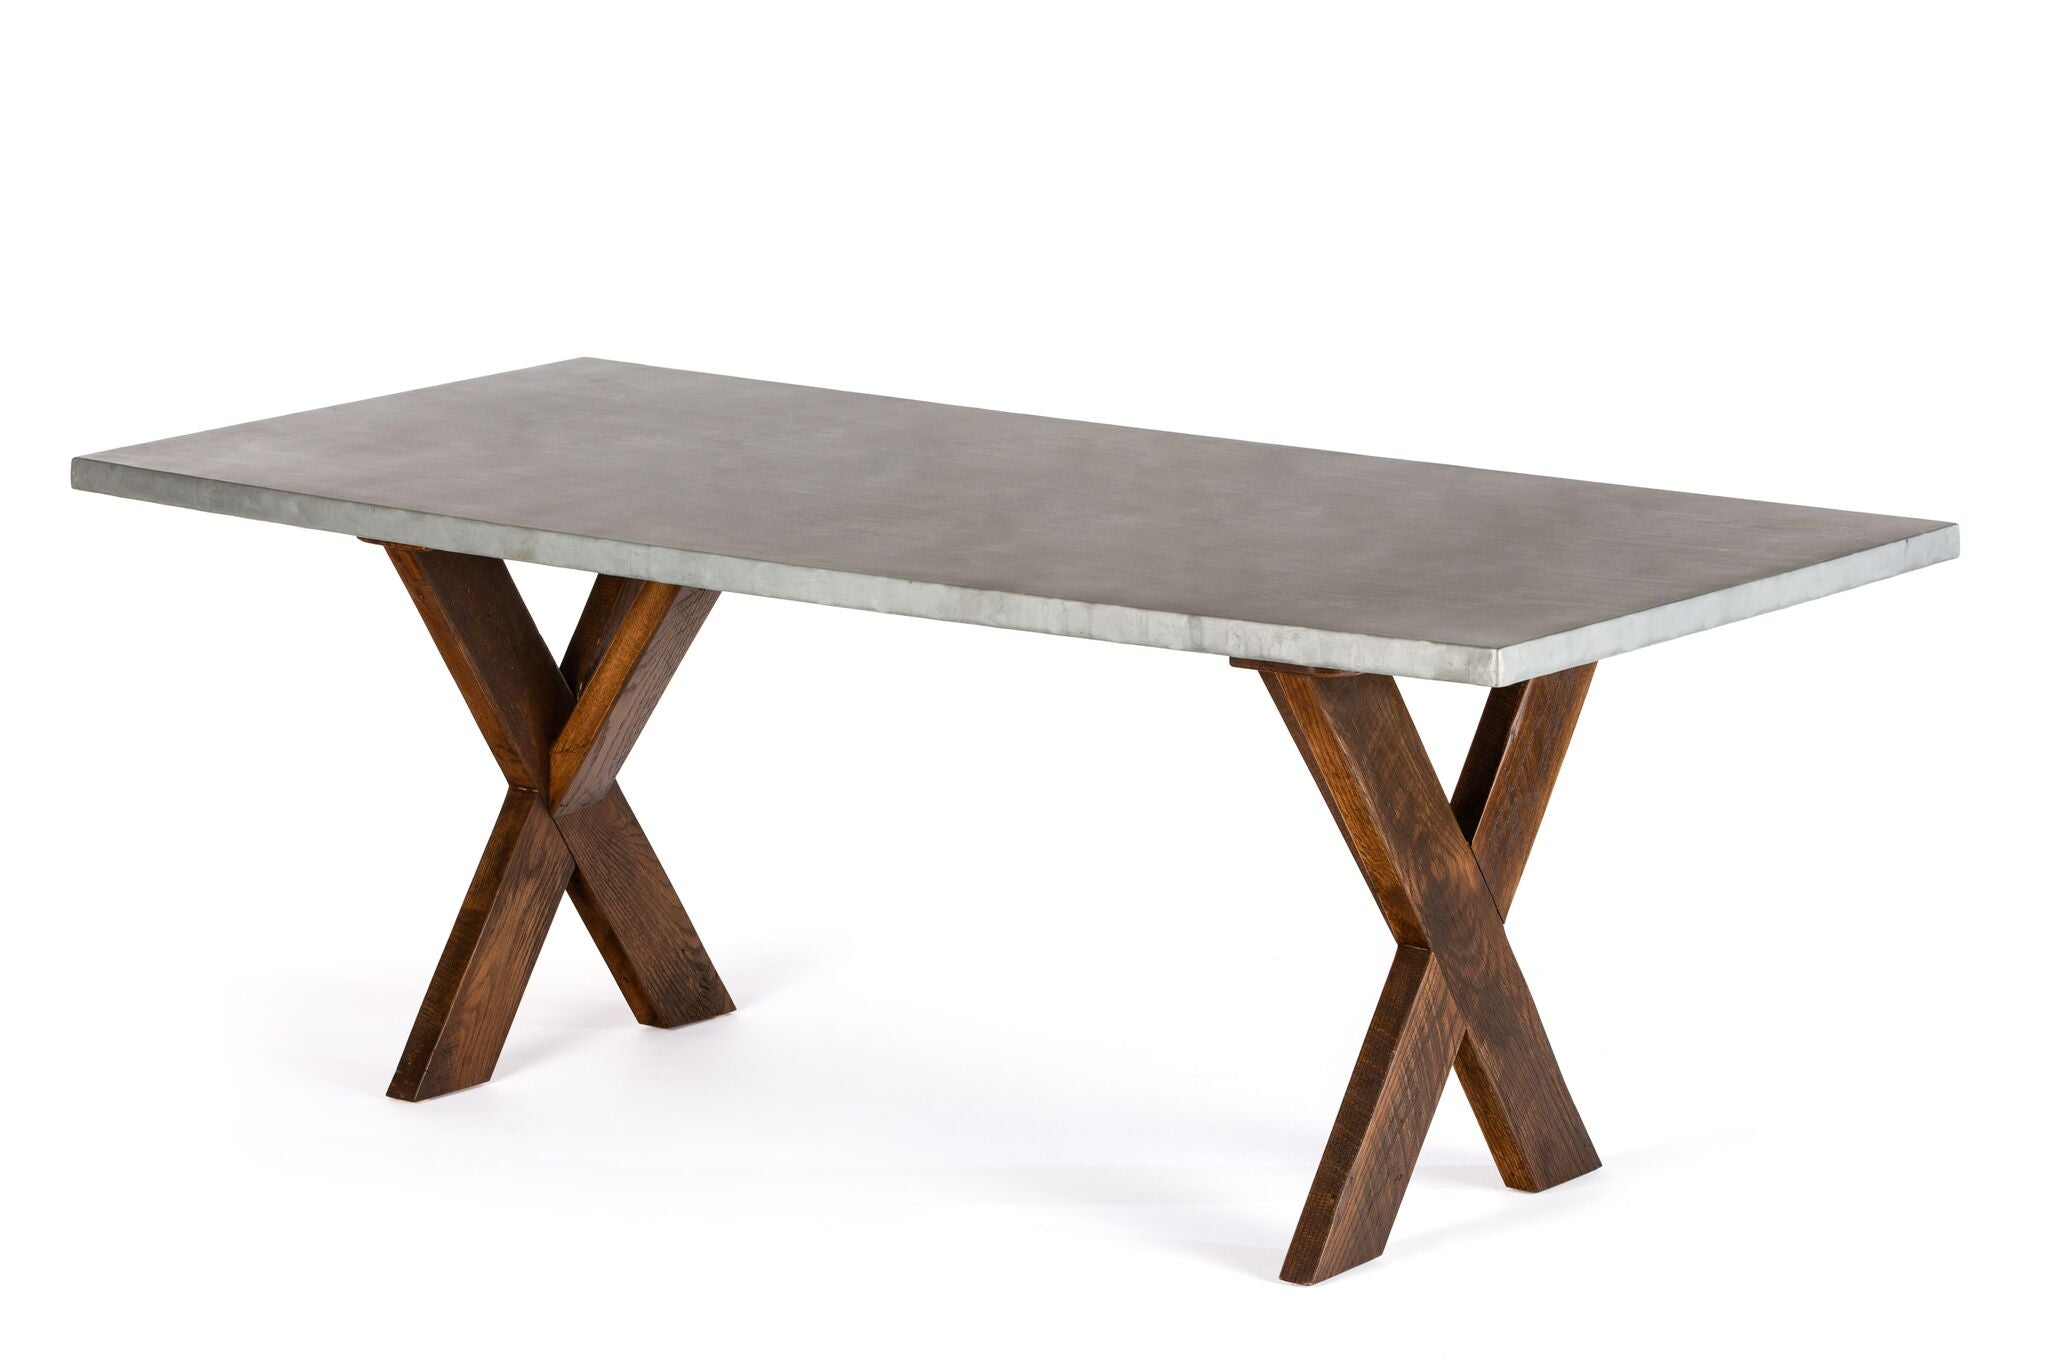 "Zinc Rectangular Table | X Base Trestle Table | CLASSIC | Dark Brown on Reclaimed Oak | CUSTOM SIZE 60""L 37""W 30""H 